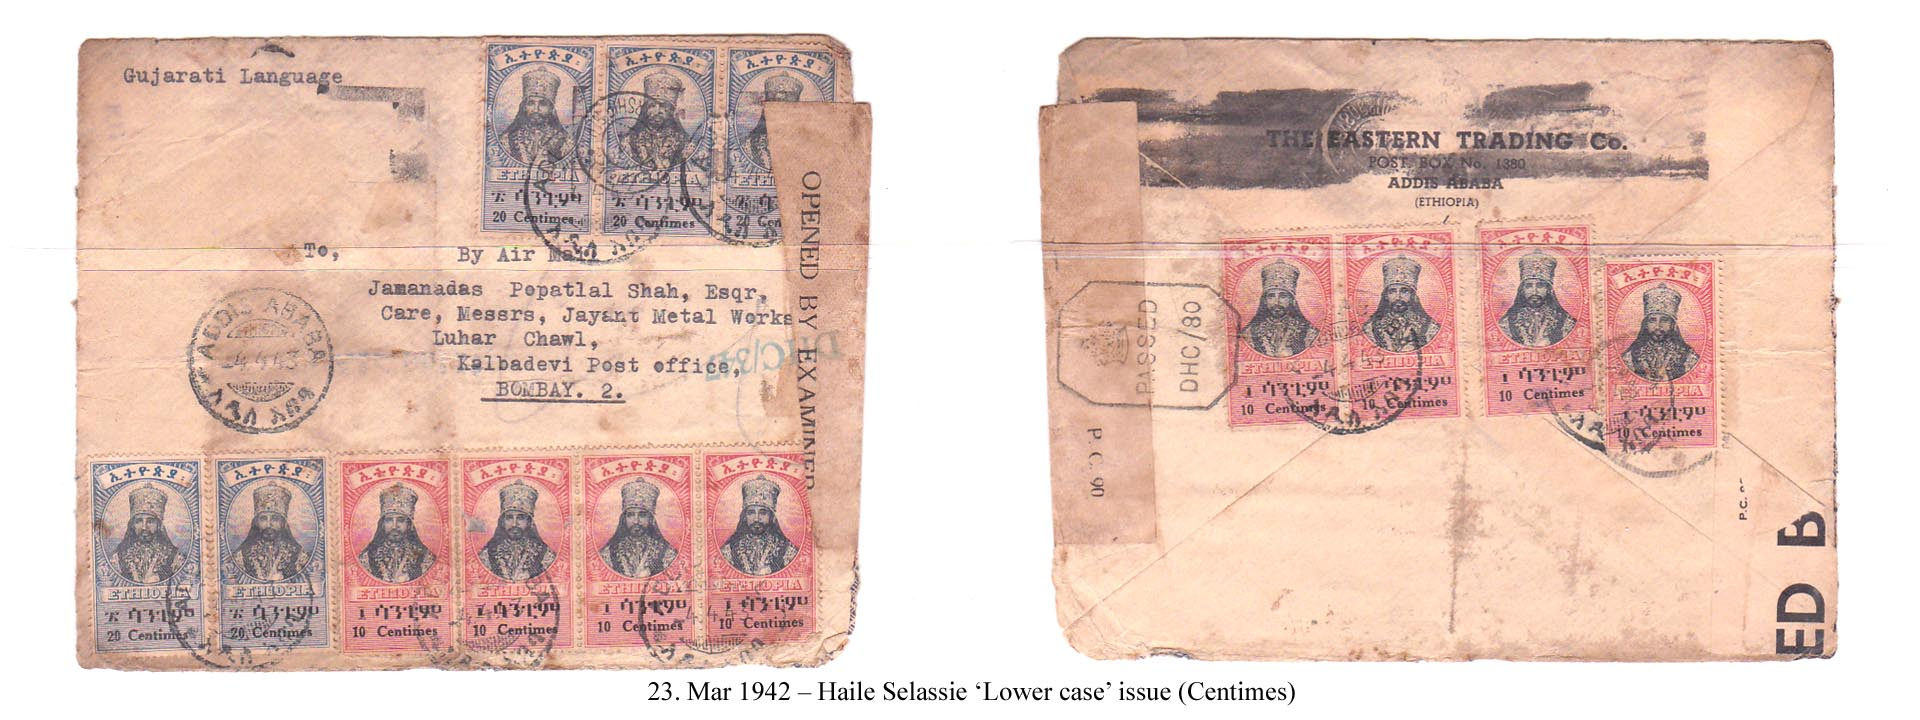 19420323 – Haile Selassie 'Lower case' issue (Centimes)